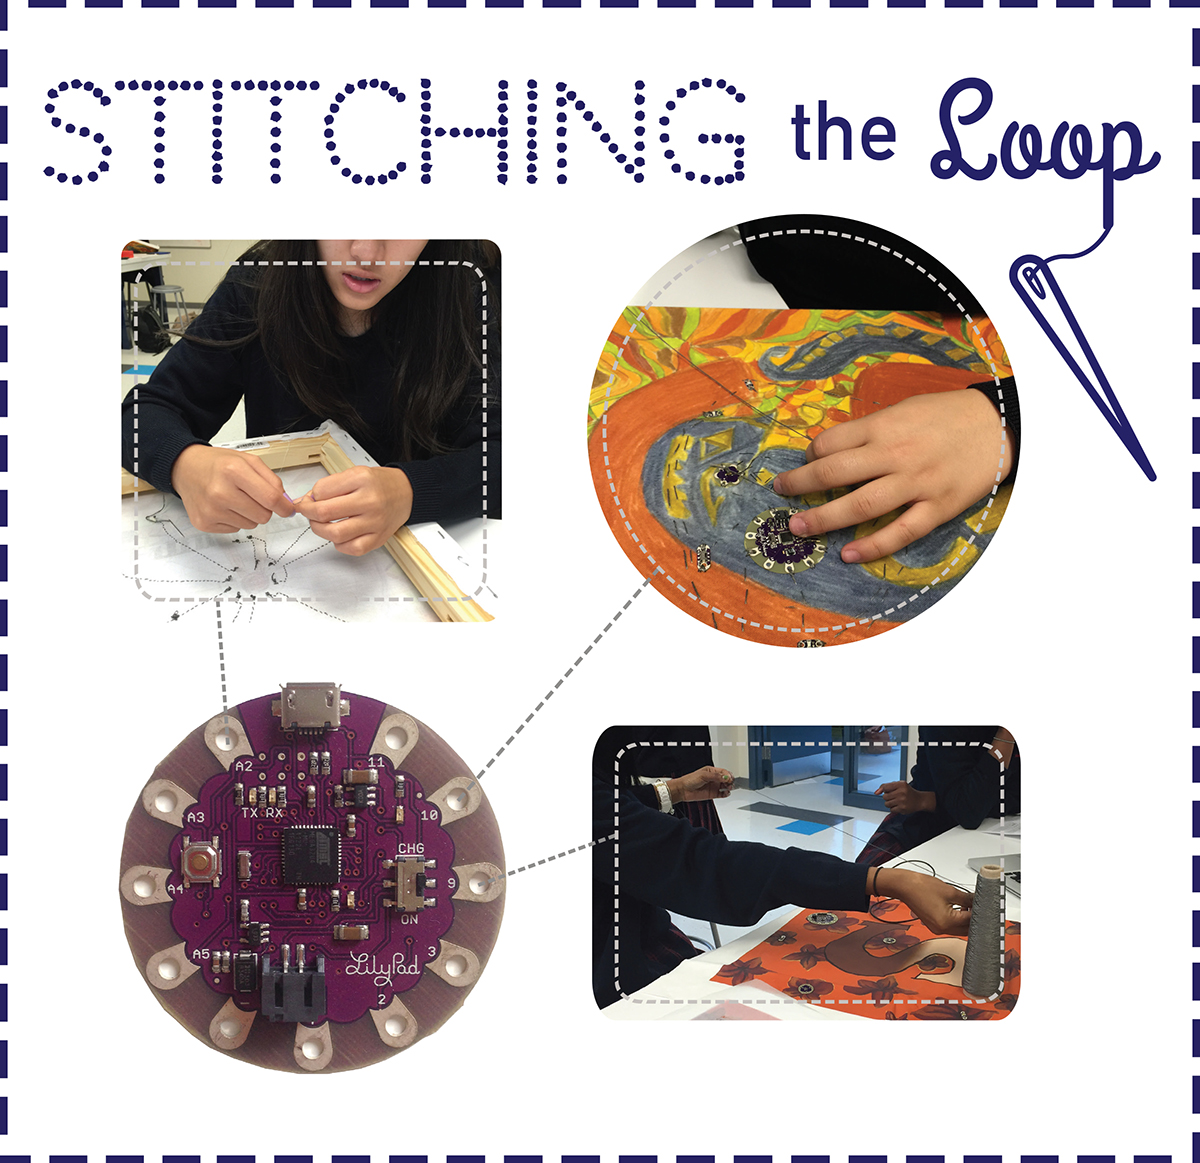 STITCHING THE LOOP  - The goal of Stitching the Loop is to broaden and deepen the computer science knowledgeable citizenry by attracting more girls and students from ethnically and economically underserved groups. We are developing and piloting a computer science curricular unit for high school students based on electronic textiles, which are fabric-based crafts made with conductive thread, microcontrollers, lights, sensors, and other electronic components. Because of their links to traditional crafts and fashion, electronic textiles have a broad appeal among young people. By leveraging the successful introductory Exploring Computer Science curriculum that is currently taught in high schools across the country, this project will reach thousands of underserved students.